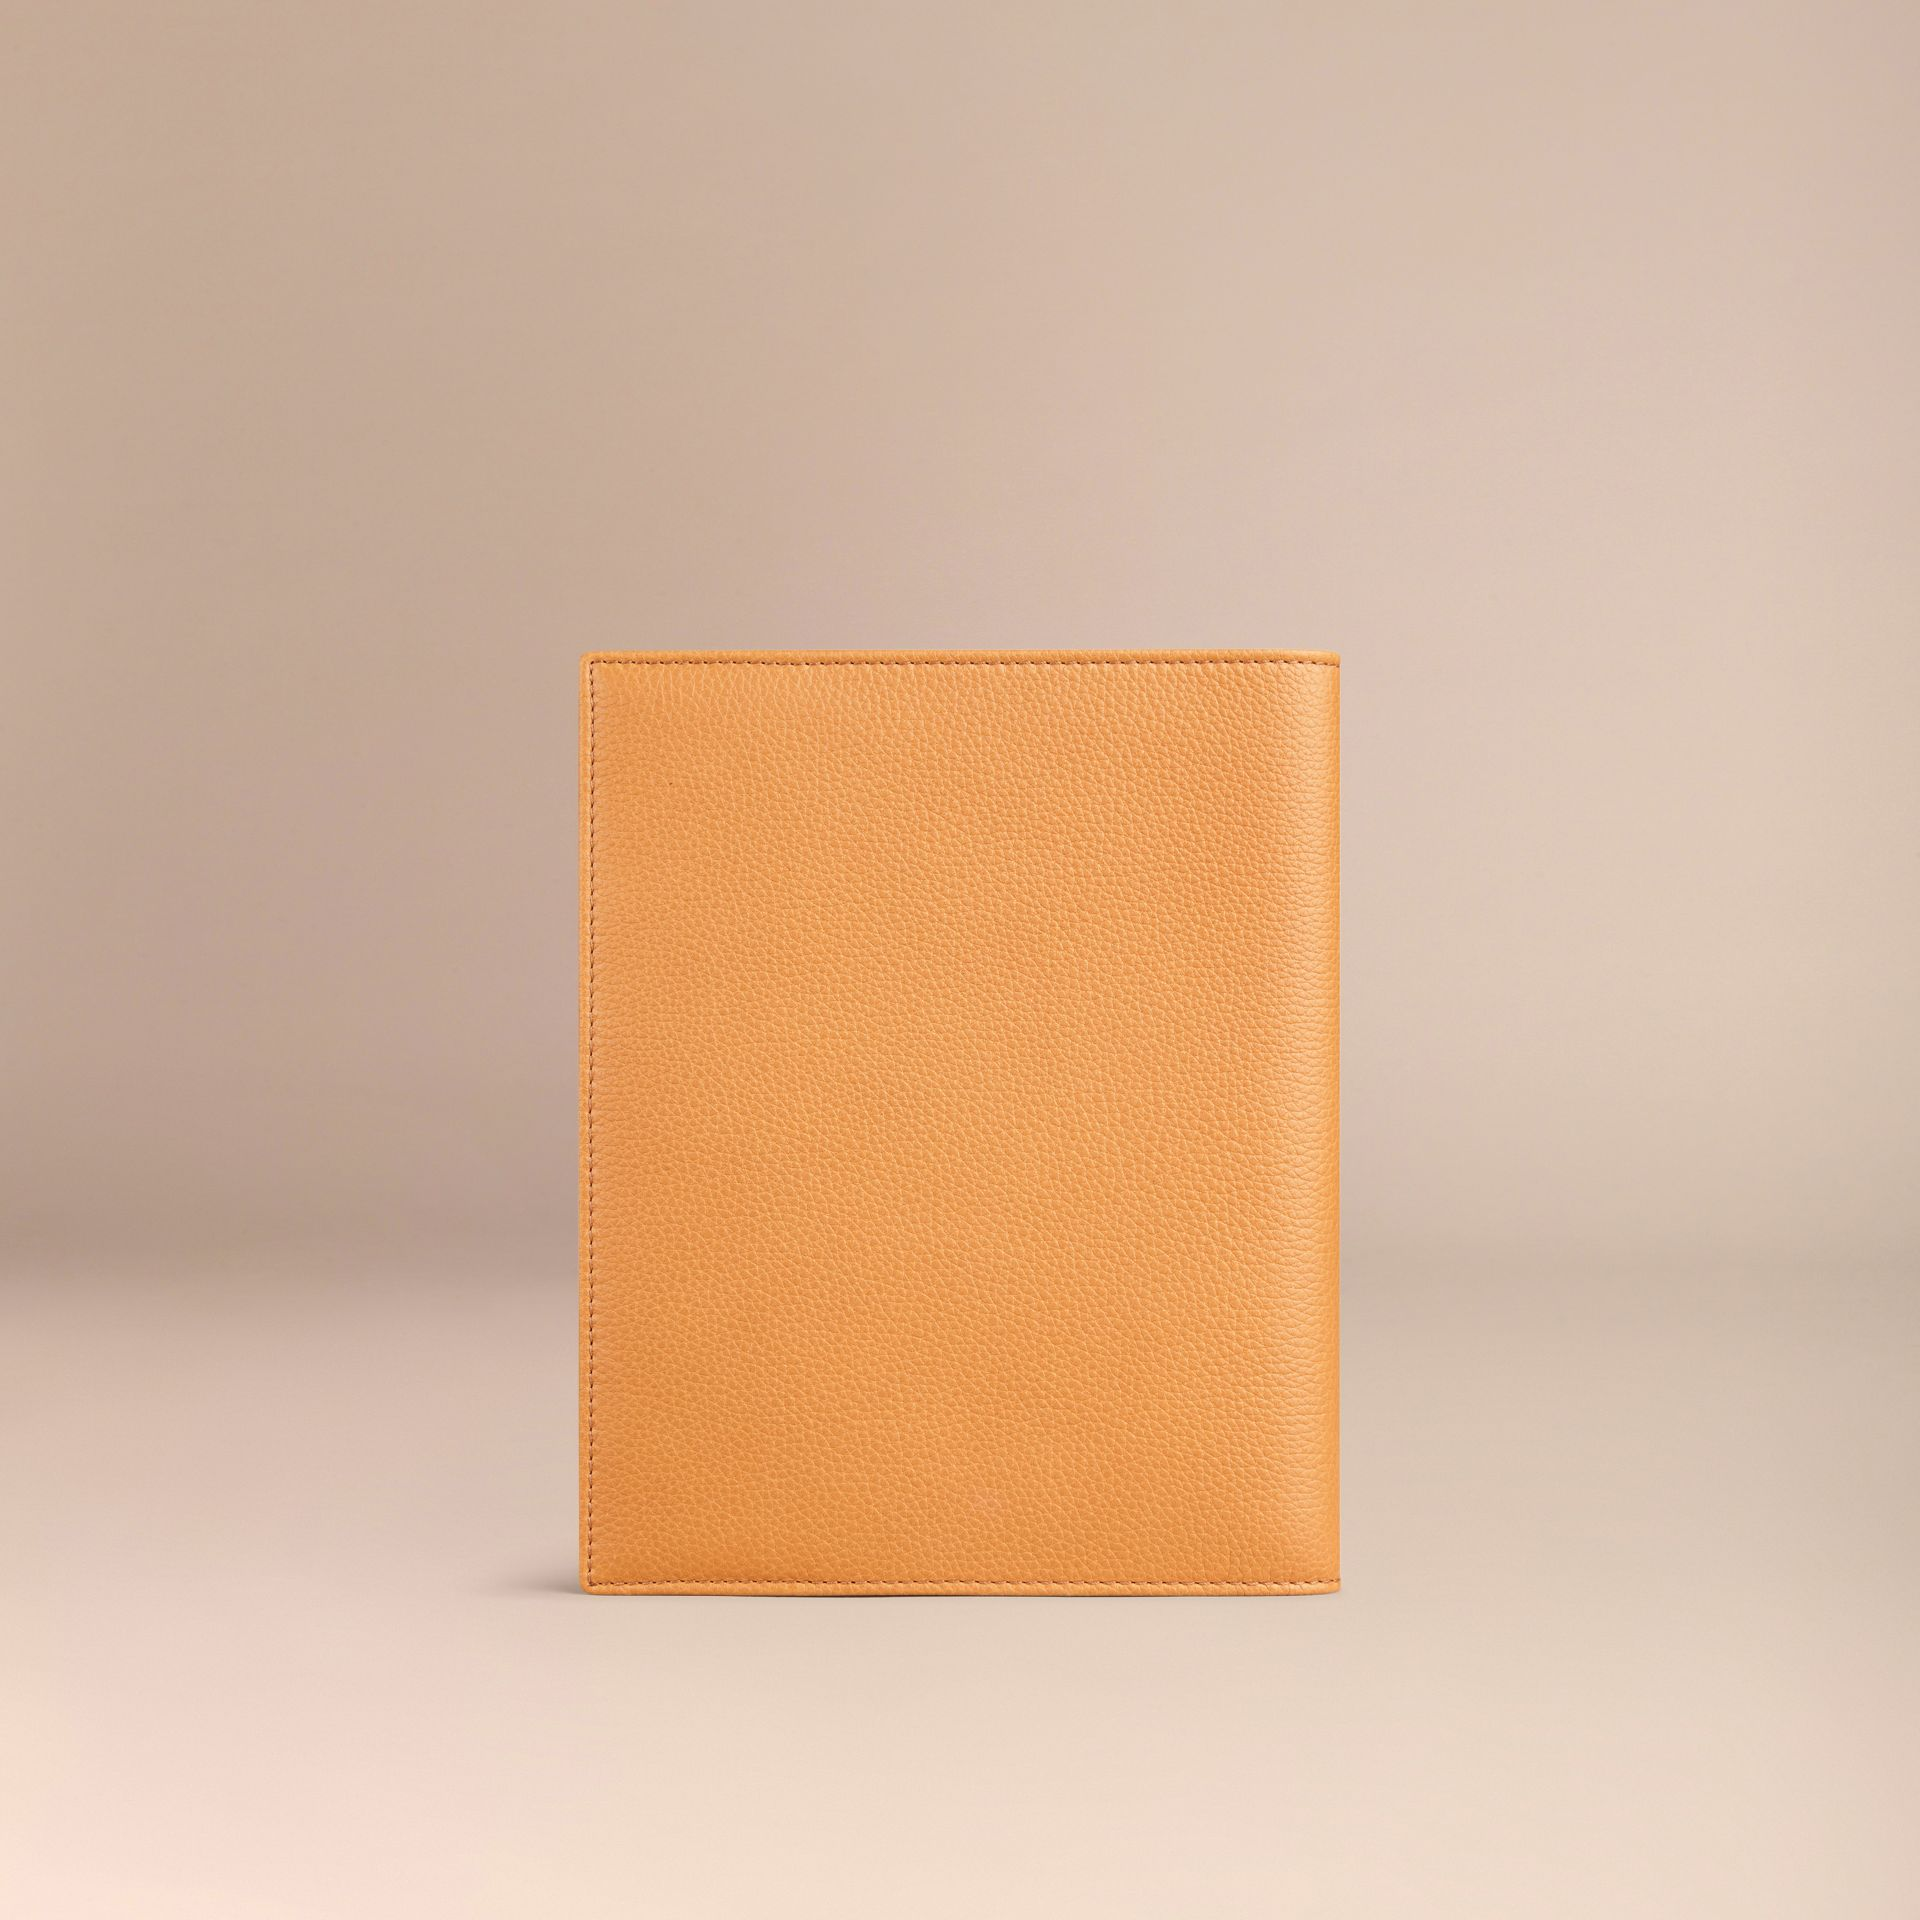 Grainy Leather 18 Month 2016/17 A5 Diary in Ochre Yellow | Burberry - gallery image 3